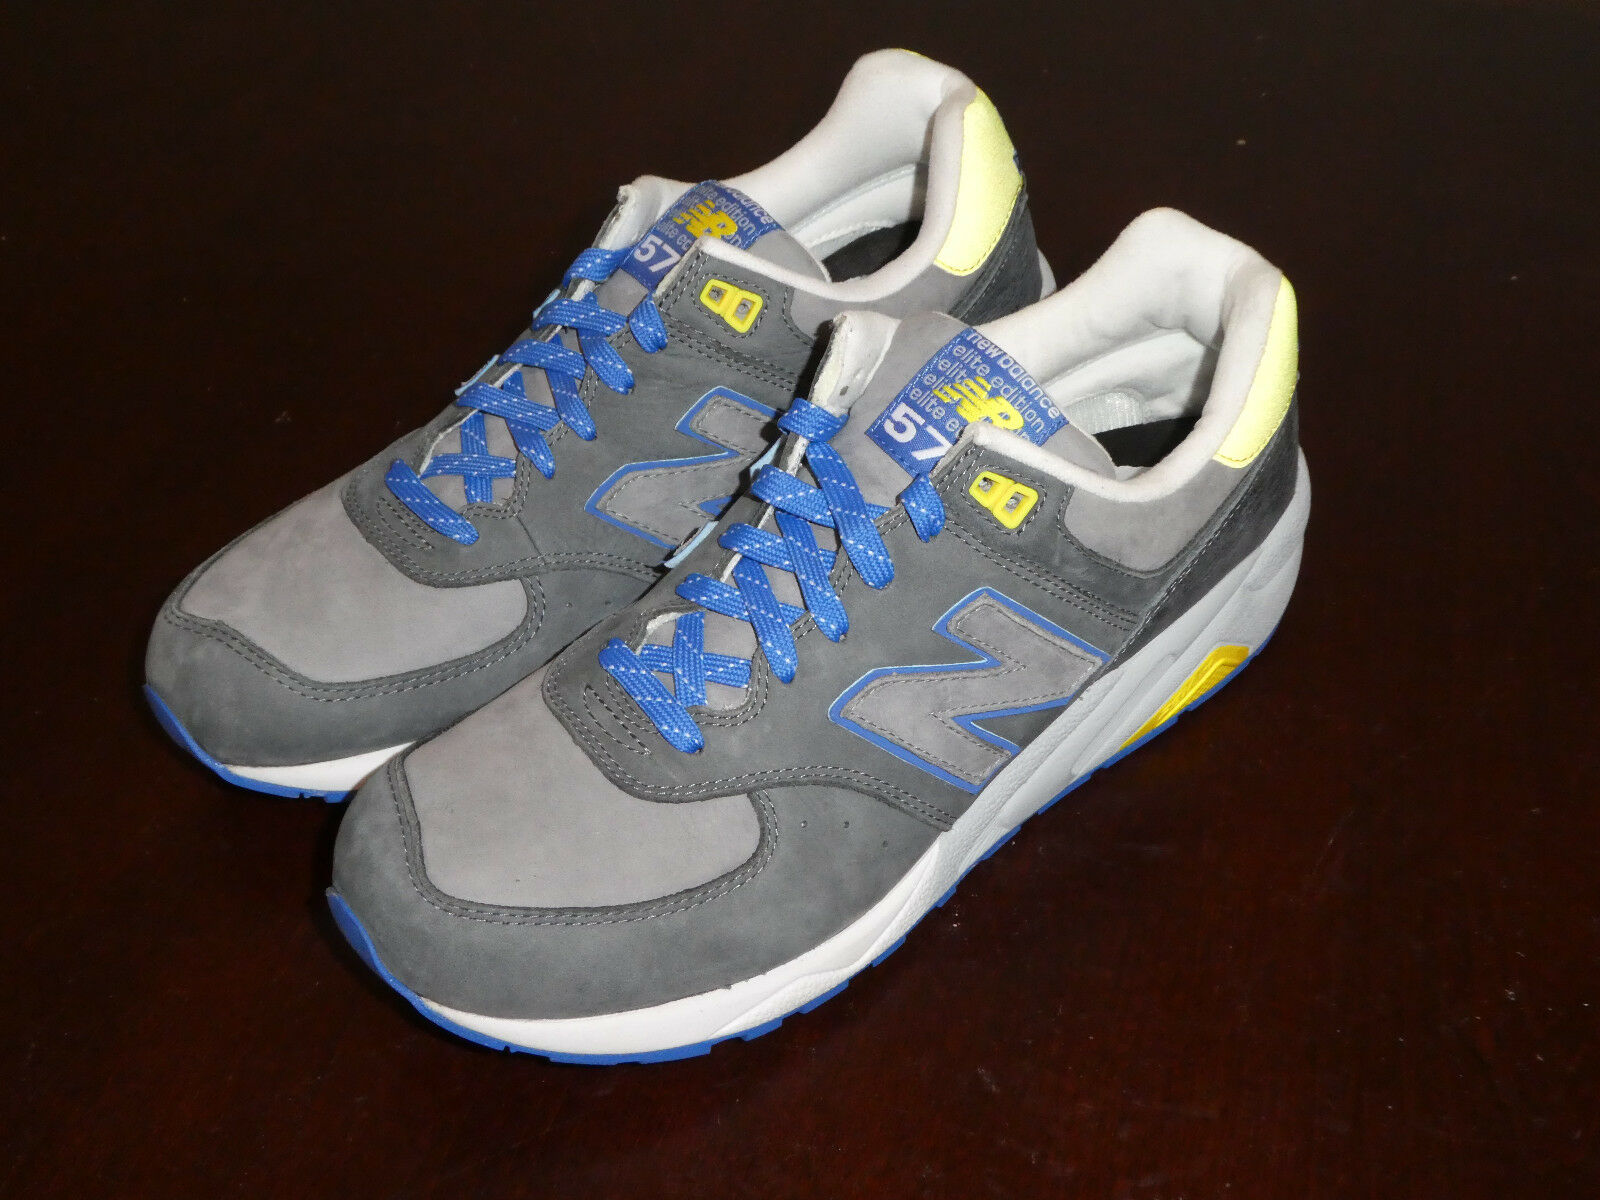 Mens New Balance 572 shoes MRT572LT Sneakers new Size 9.5